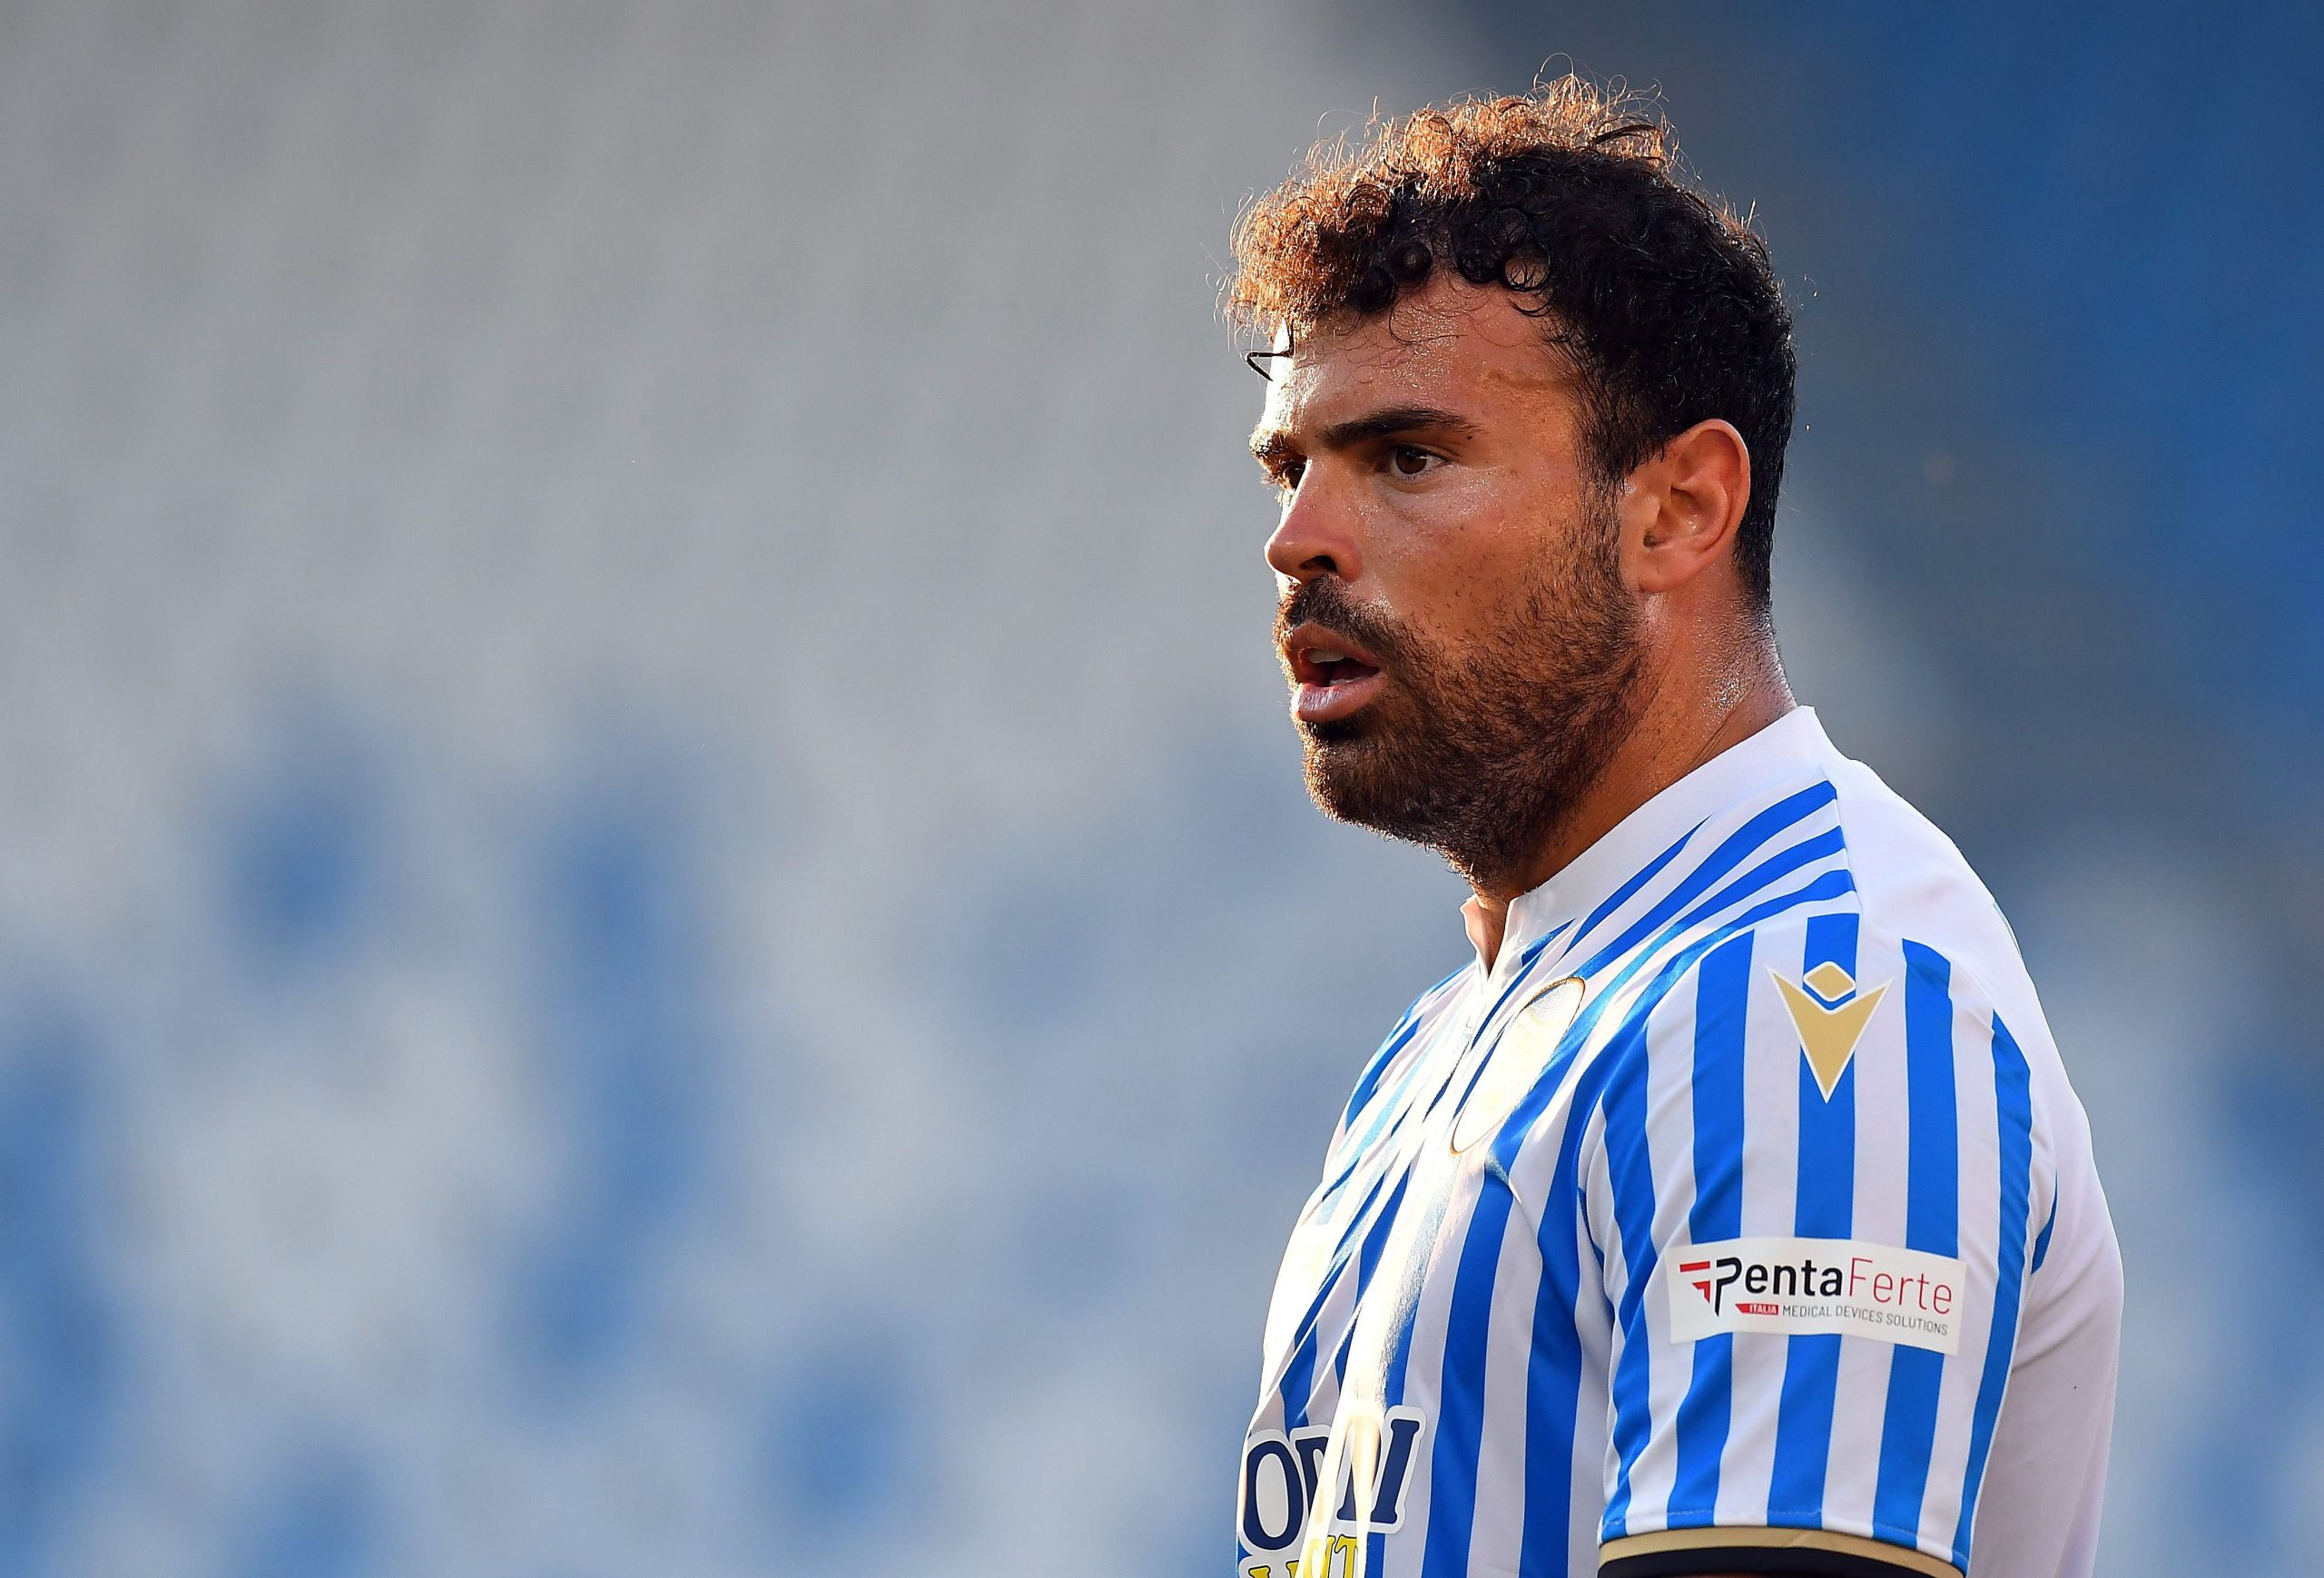 FERRARA, ITALY - JULY 09: Andrea Petagna of SPAL looks on during the Serie A match between SPAL and Udinese Calcio at Stadio Paolo Mazza on July 09, 2020 in Ferrara, Italy. (Photo by Alessandro Sabattini/Getty Images)